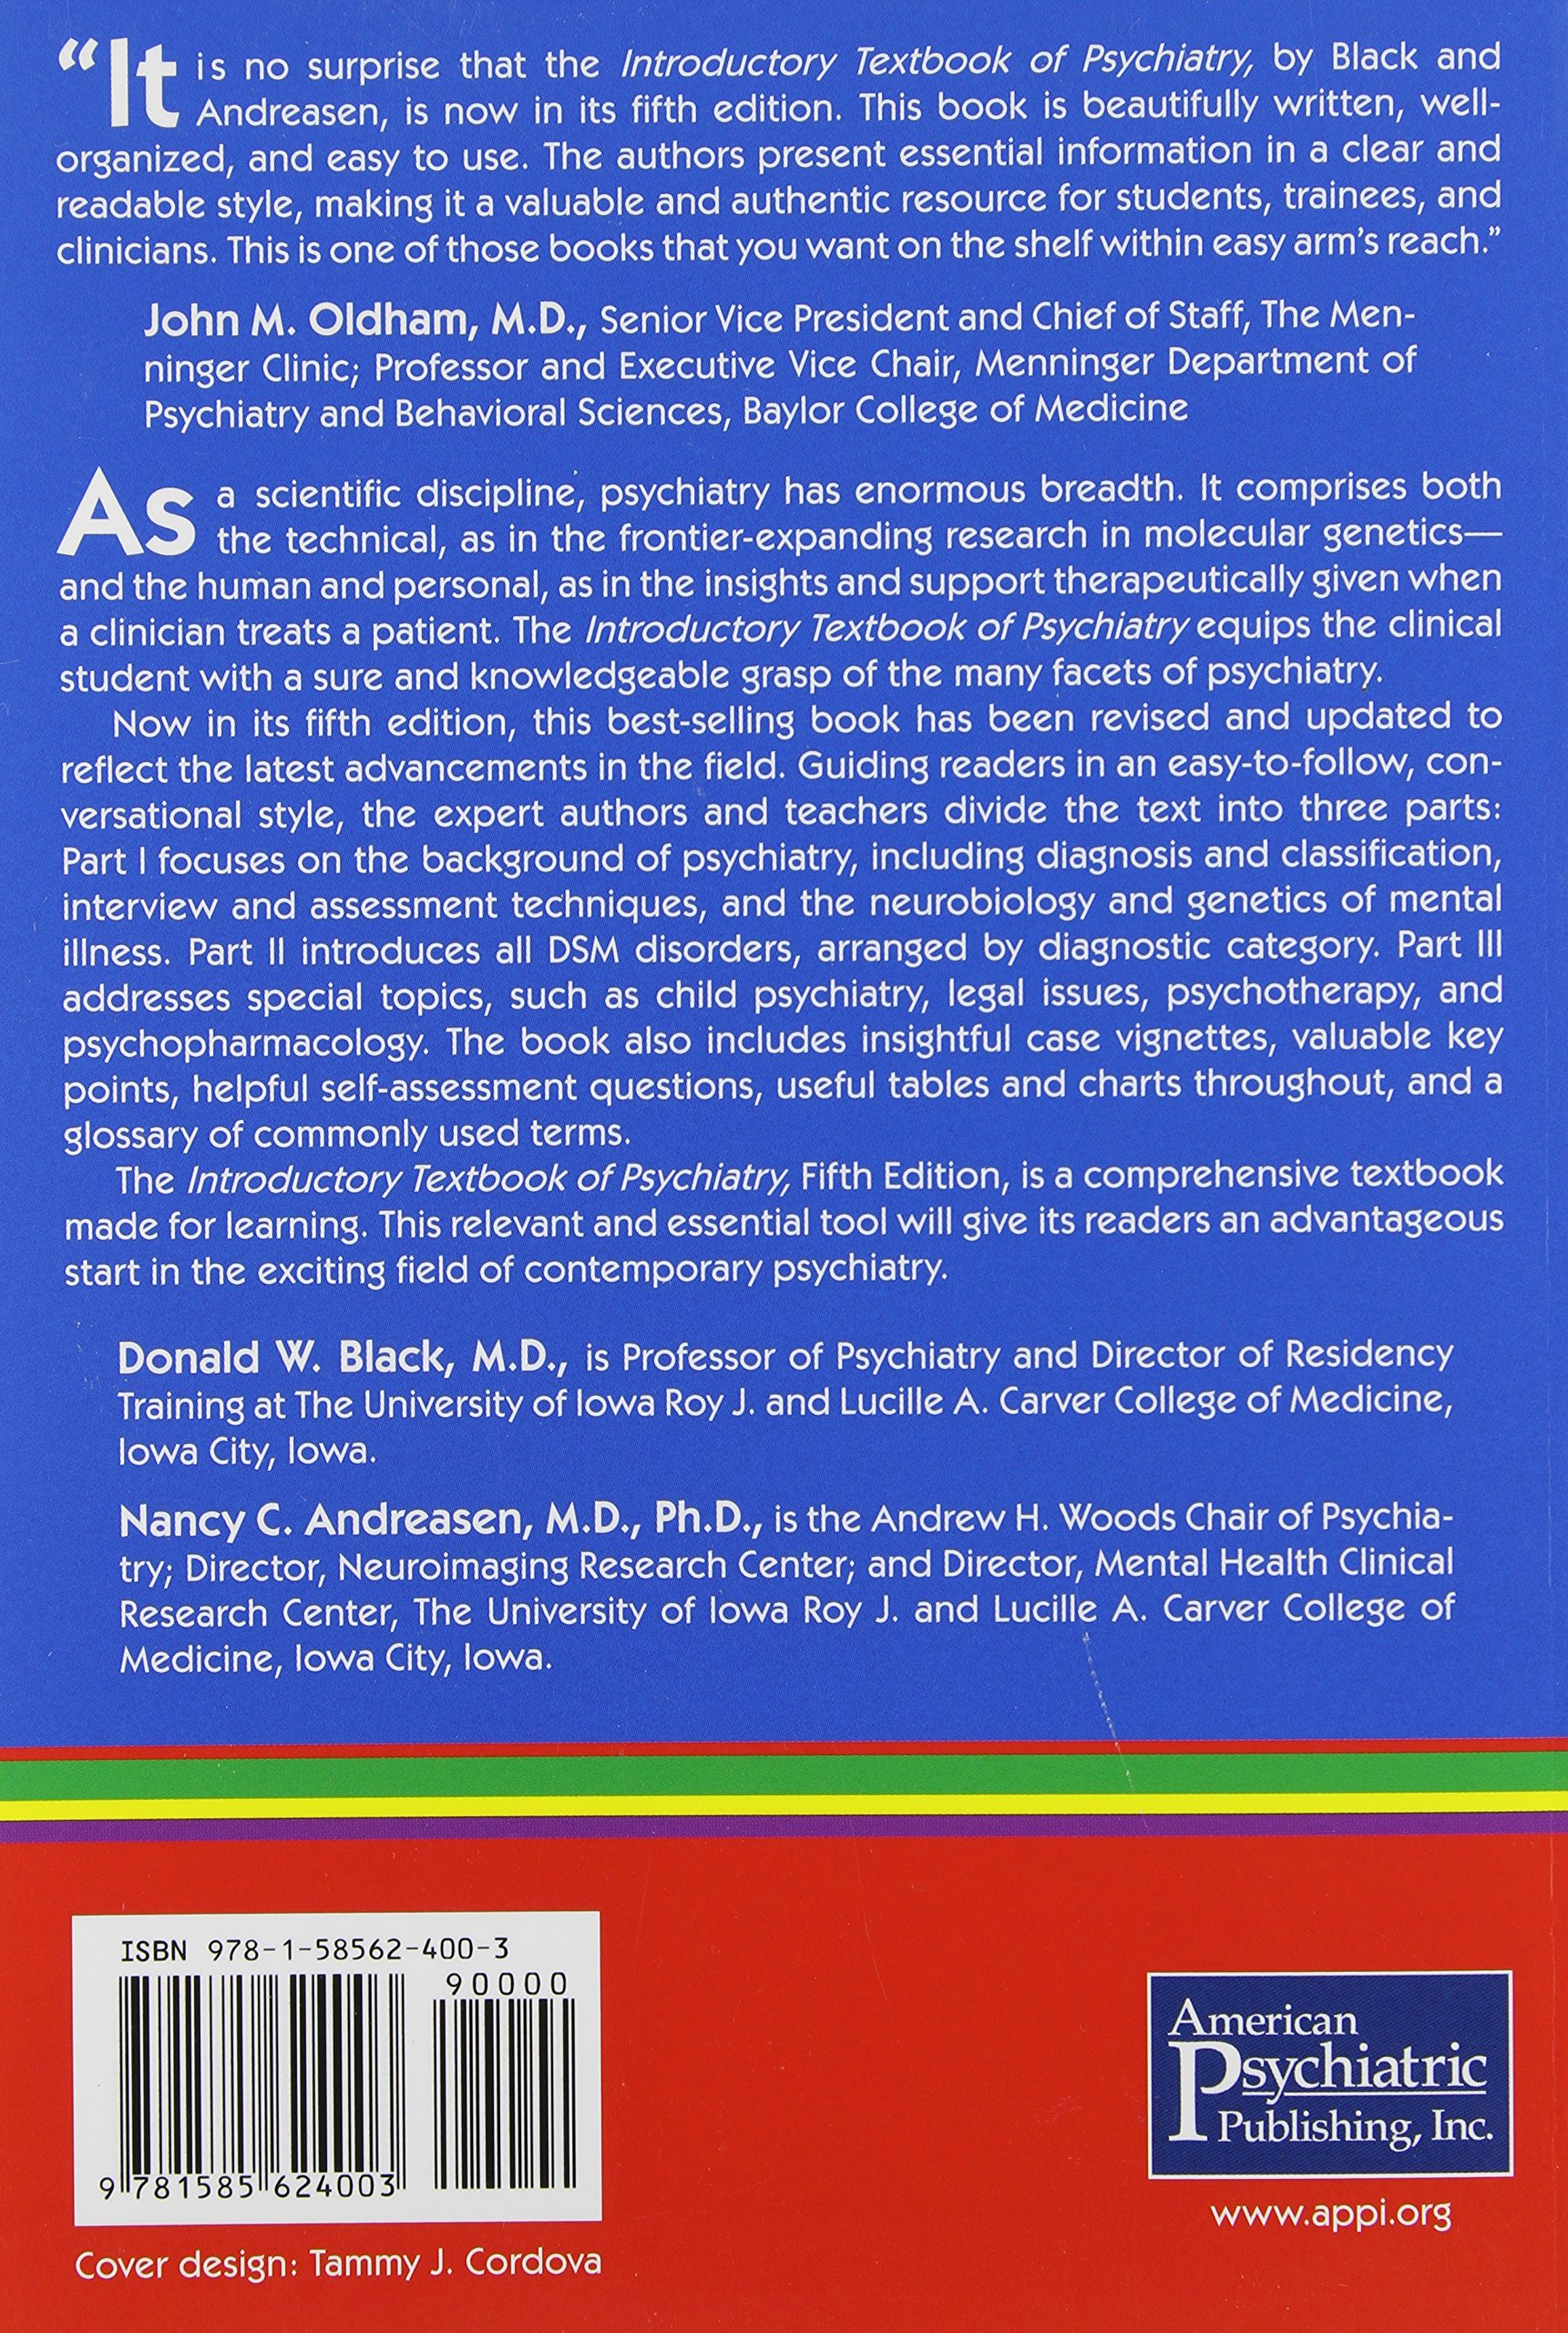 Introductory textbook of psychiatry donald w black 9781585624003 introductory textbook of psychiatry donald w black 9781585624003 psychiatry amazon canada fandeluxe Image collections